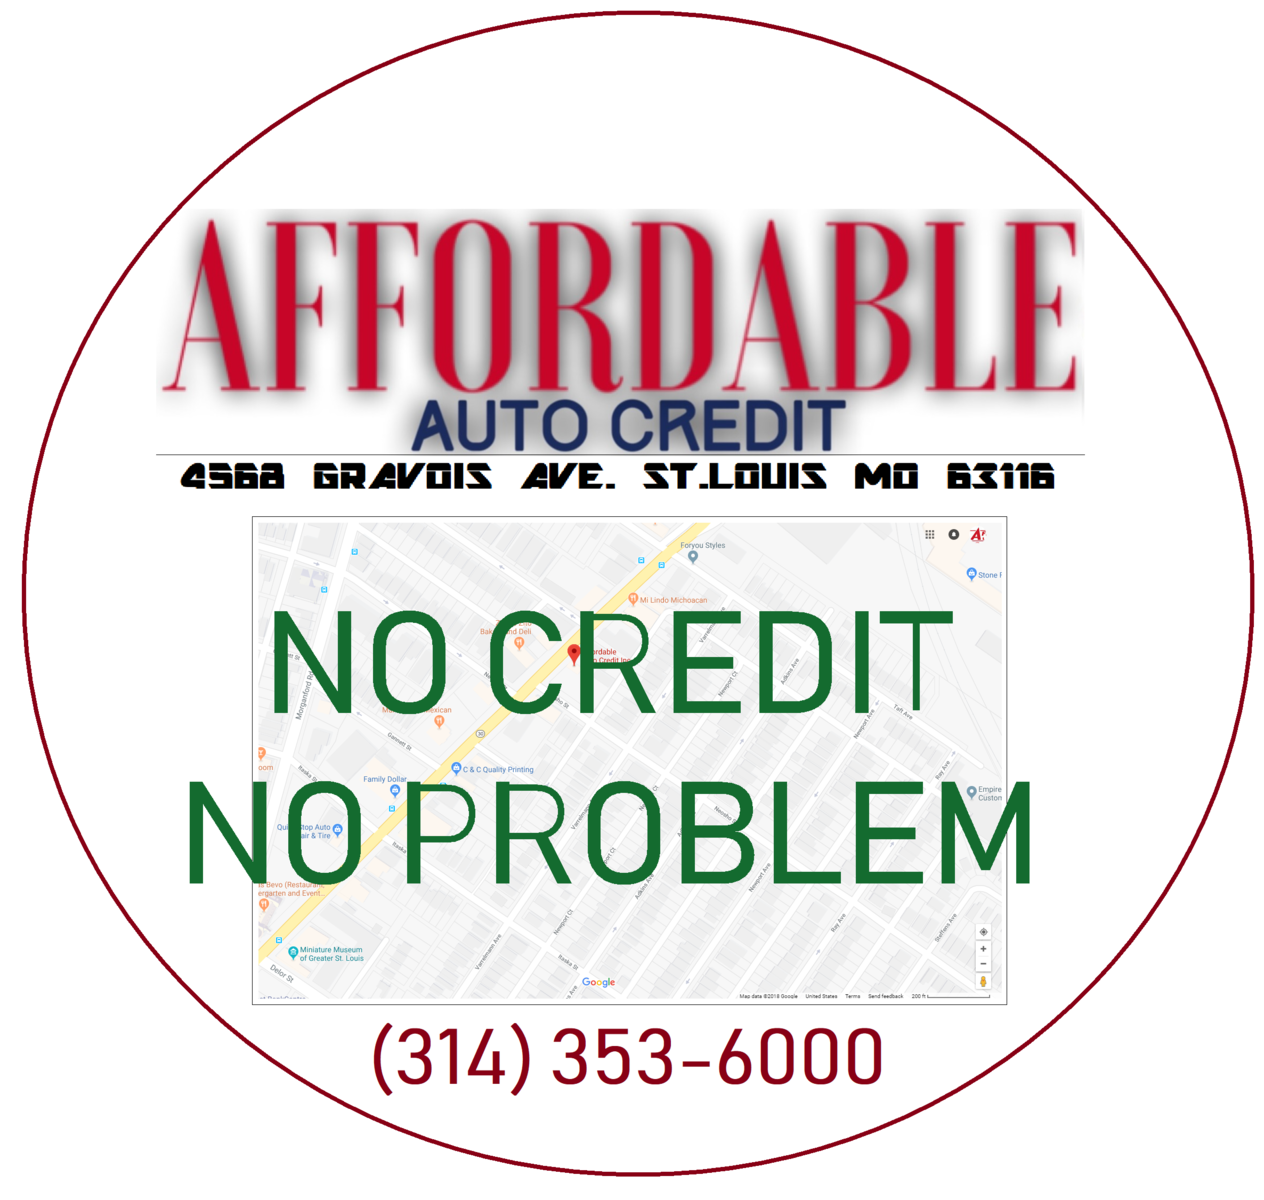 Affordable Auto Credit, Inc